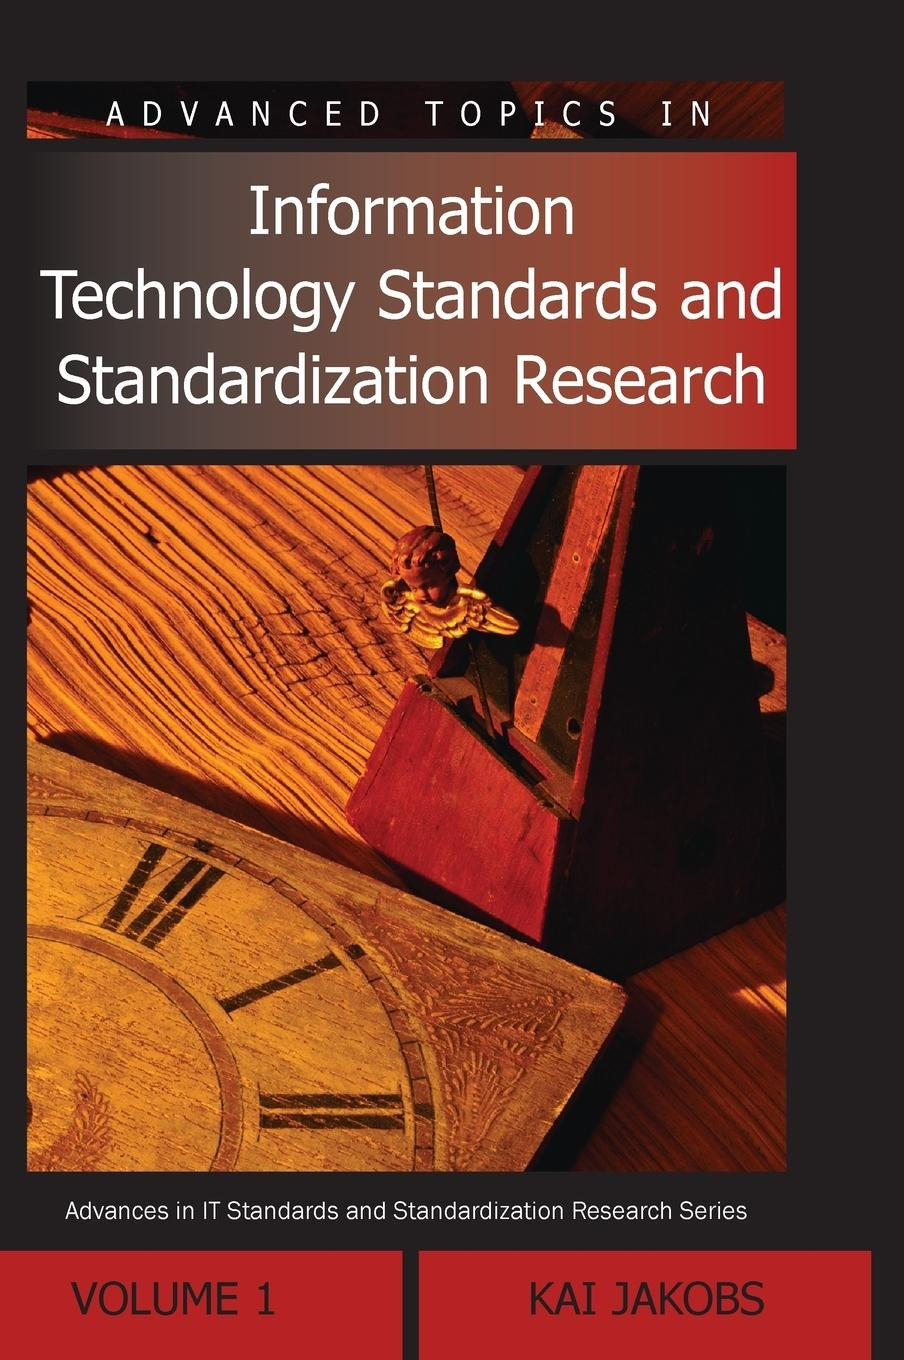 research topics for information technology students